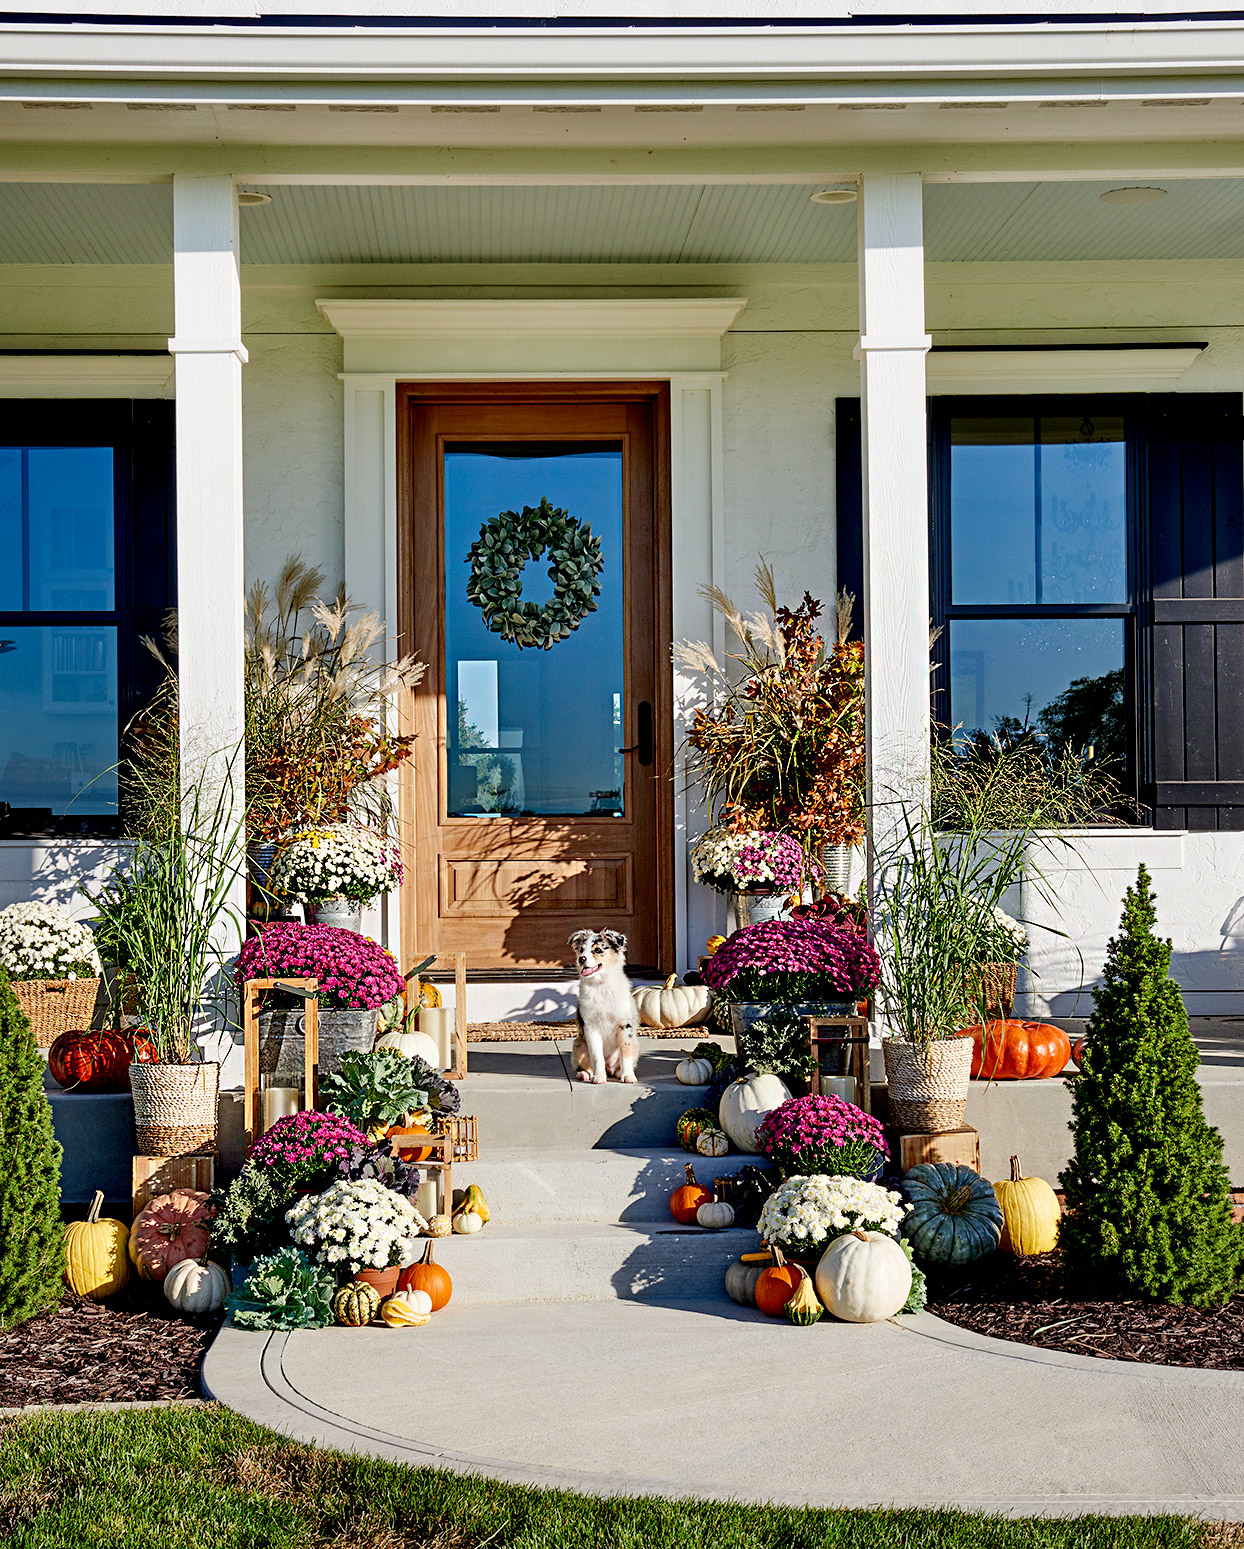 Front porch with flowers and pumpkins and dog